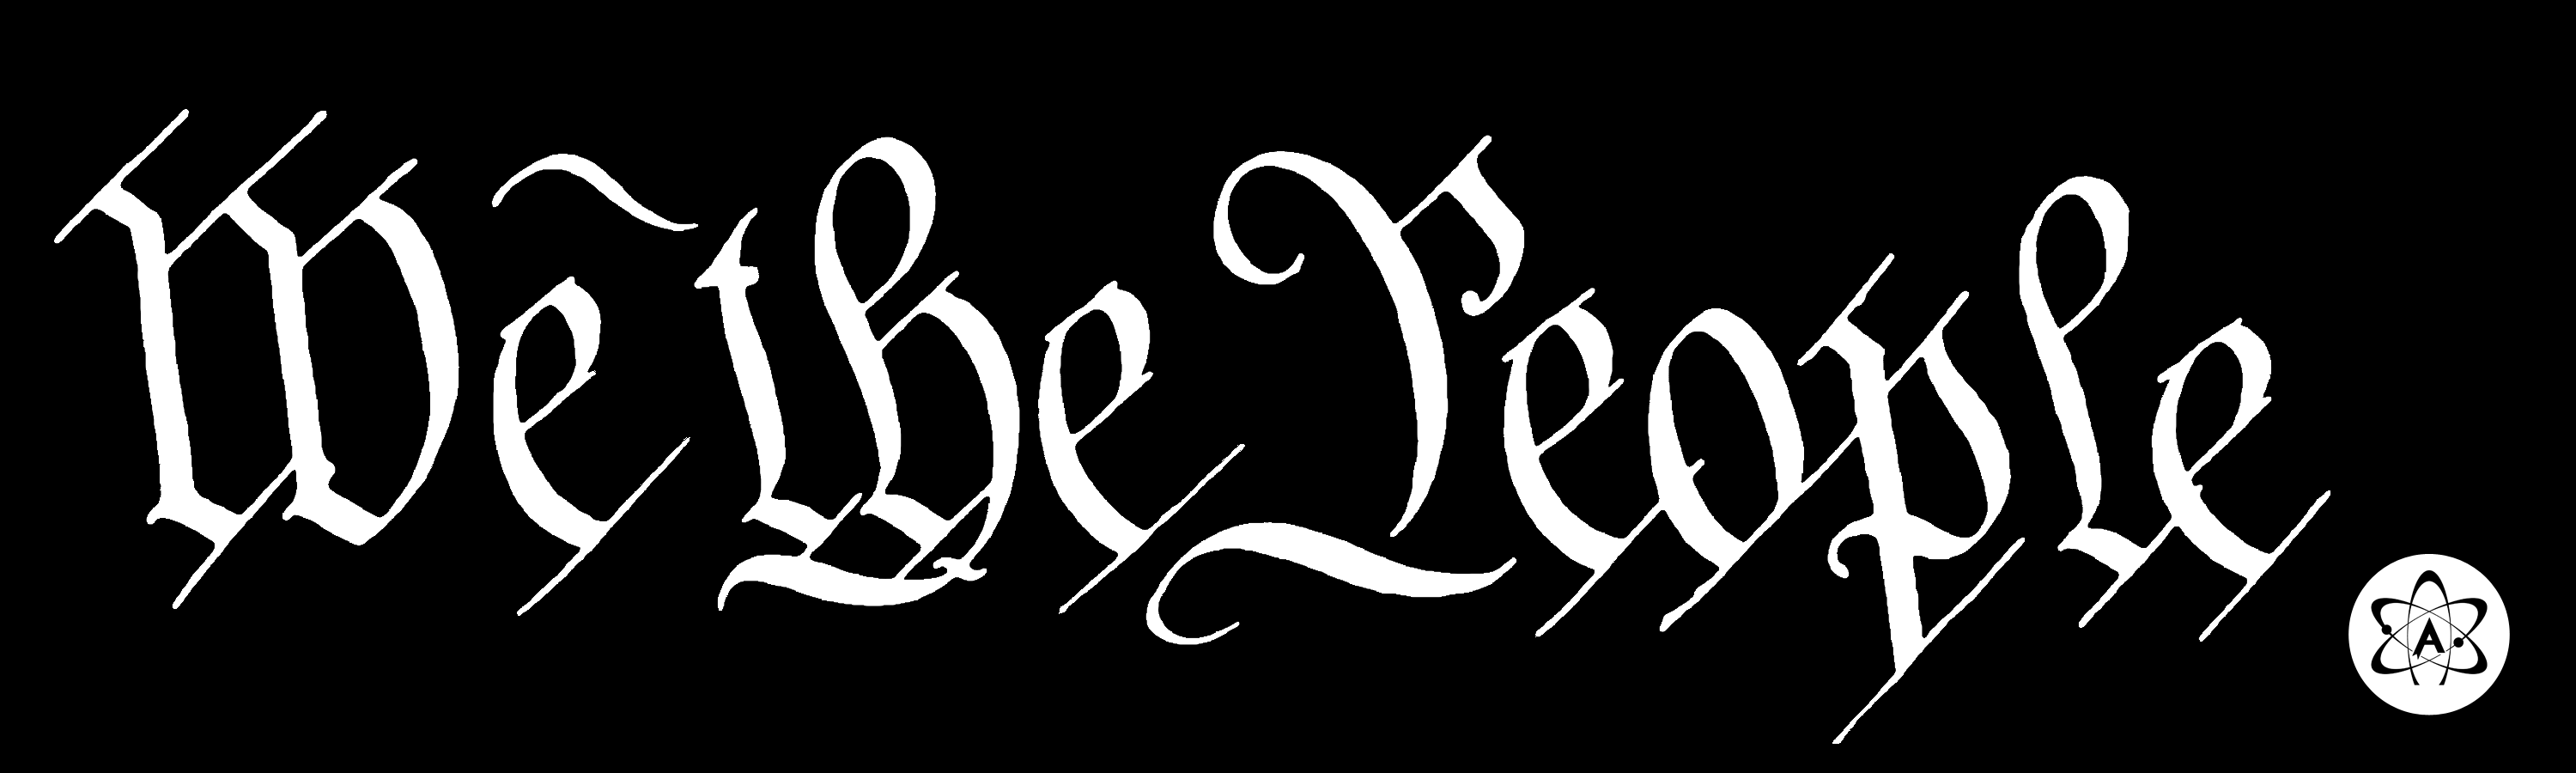 We The People Bumper Sticker We The People Bumper Stickers Peace Gesture